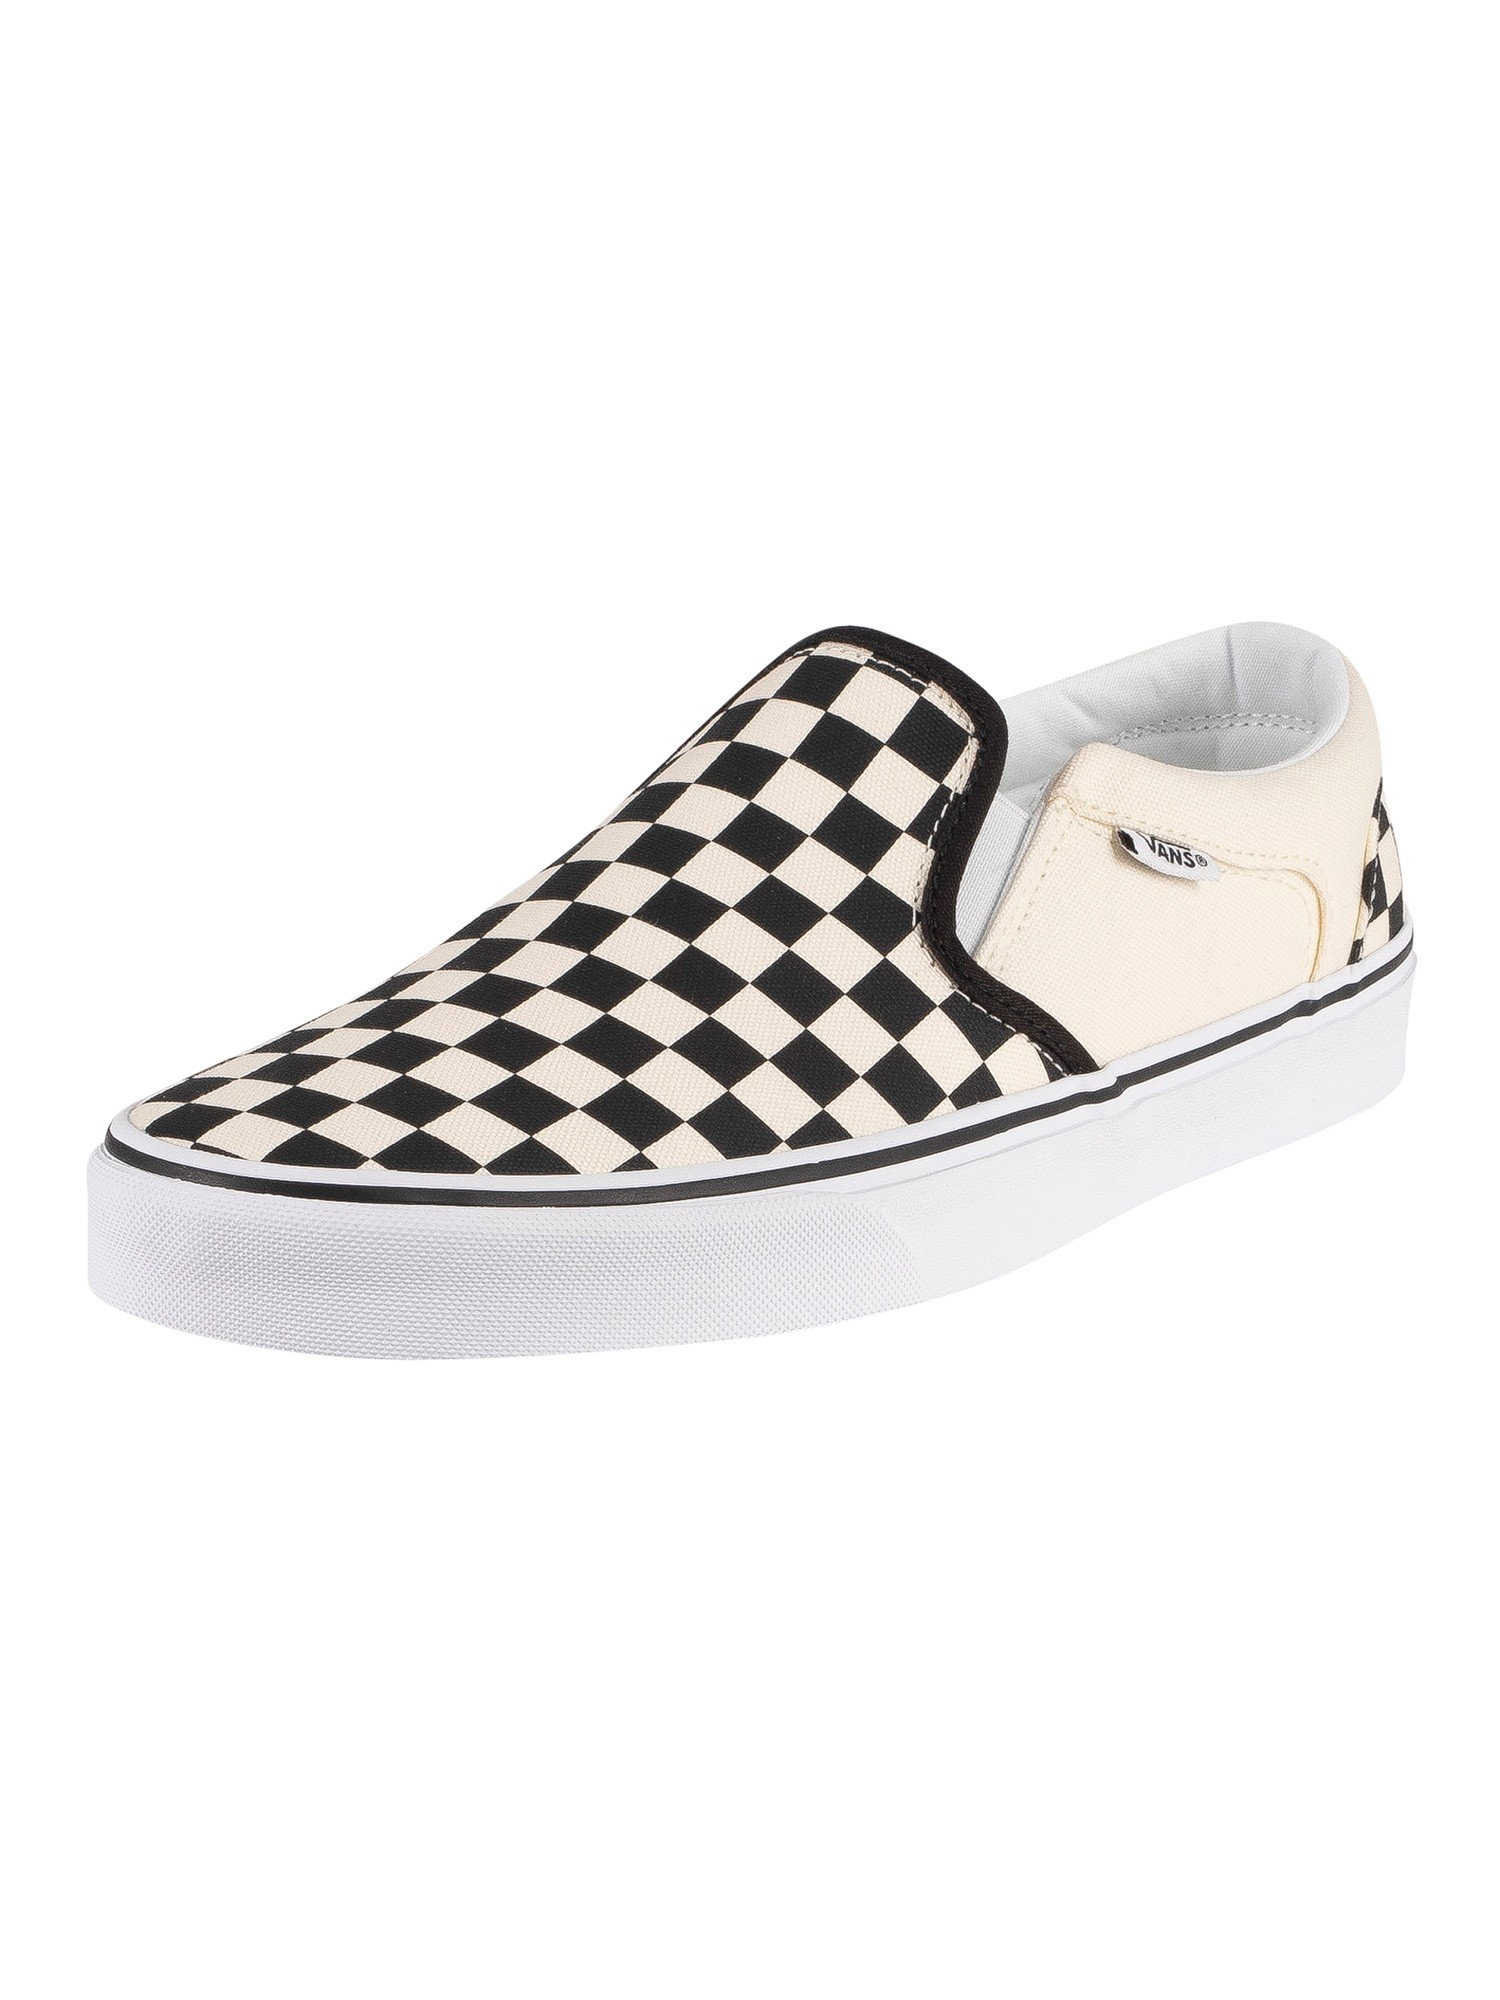 Asher Checkerboard Trainers, White